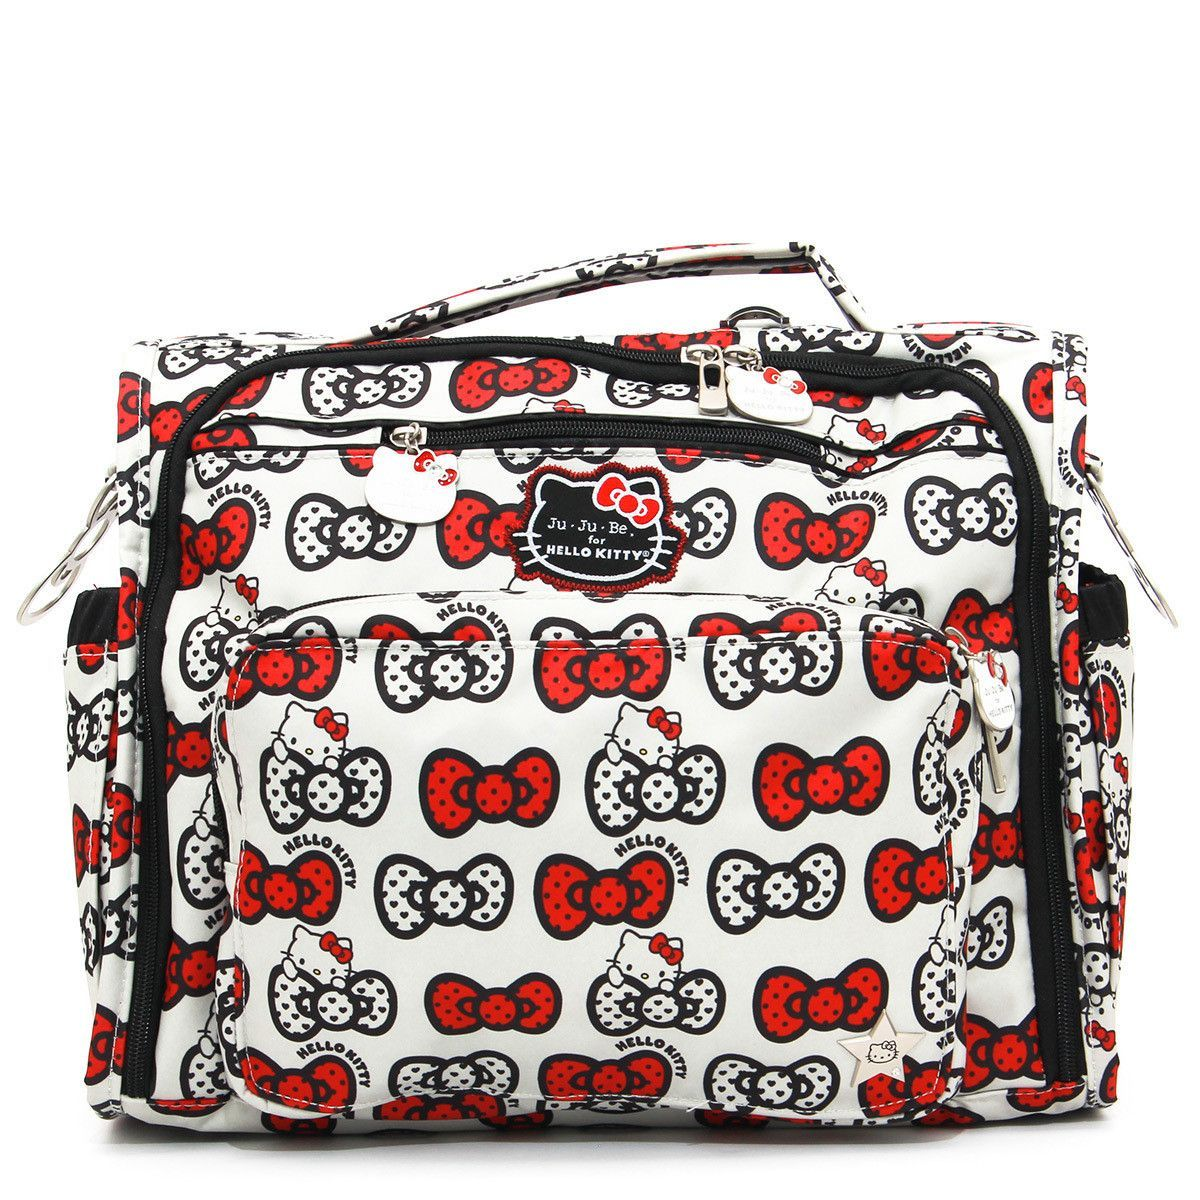 Jujube Bff O Kitty Collection Convertible Diaper Bag K A Bow This Will Be Your It Has Tons Of Pockets And Organization So Much You Won T